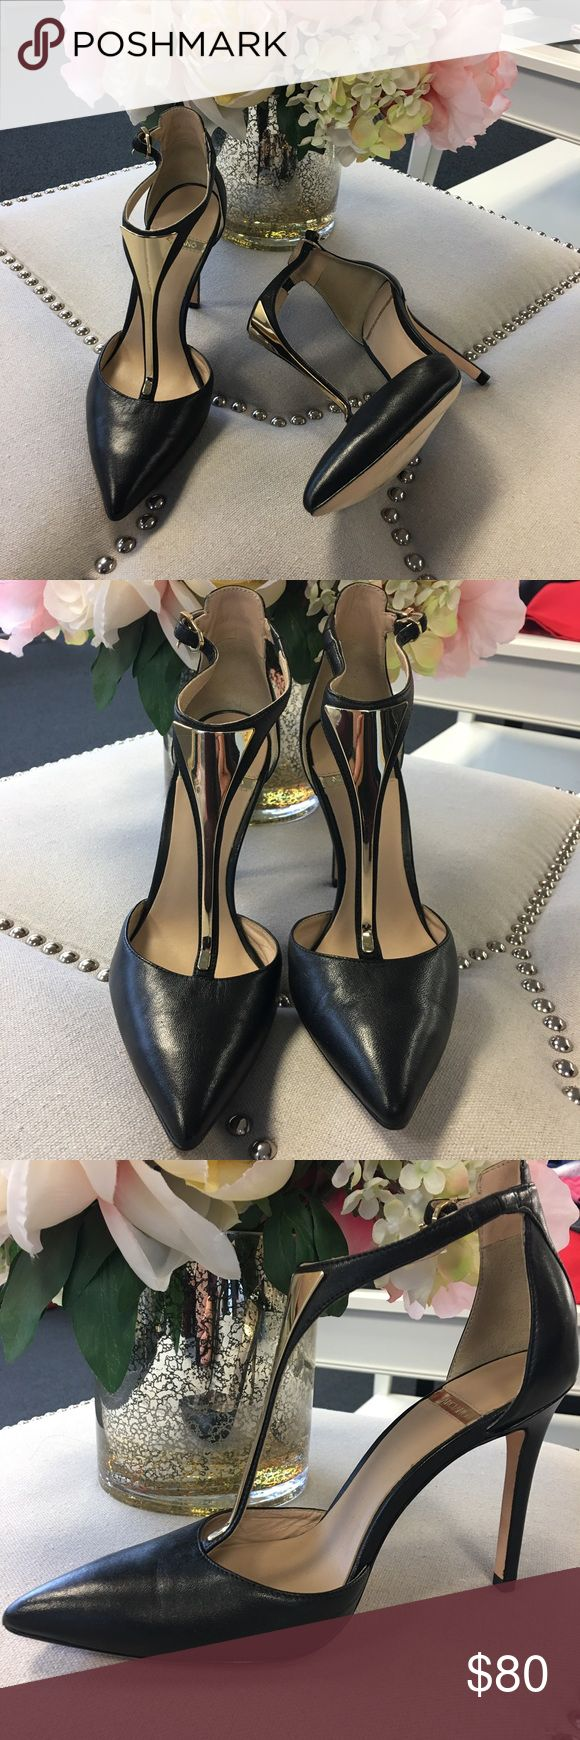 T-strap stiletto pumps Gently worn, great condition. No noticeable flaws Guess by Marciano Shoes Heels